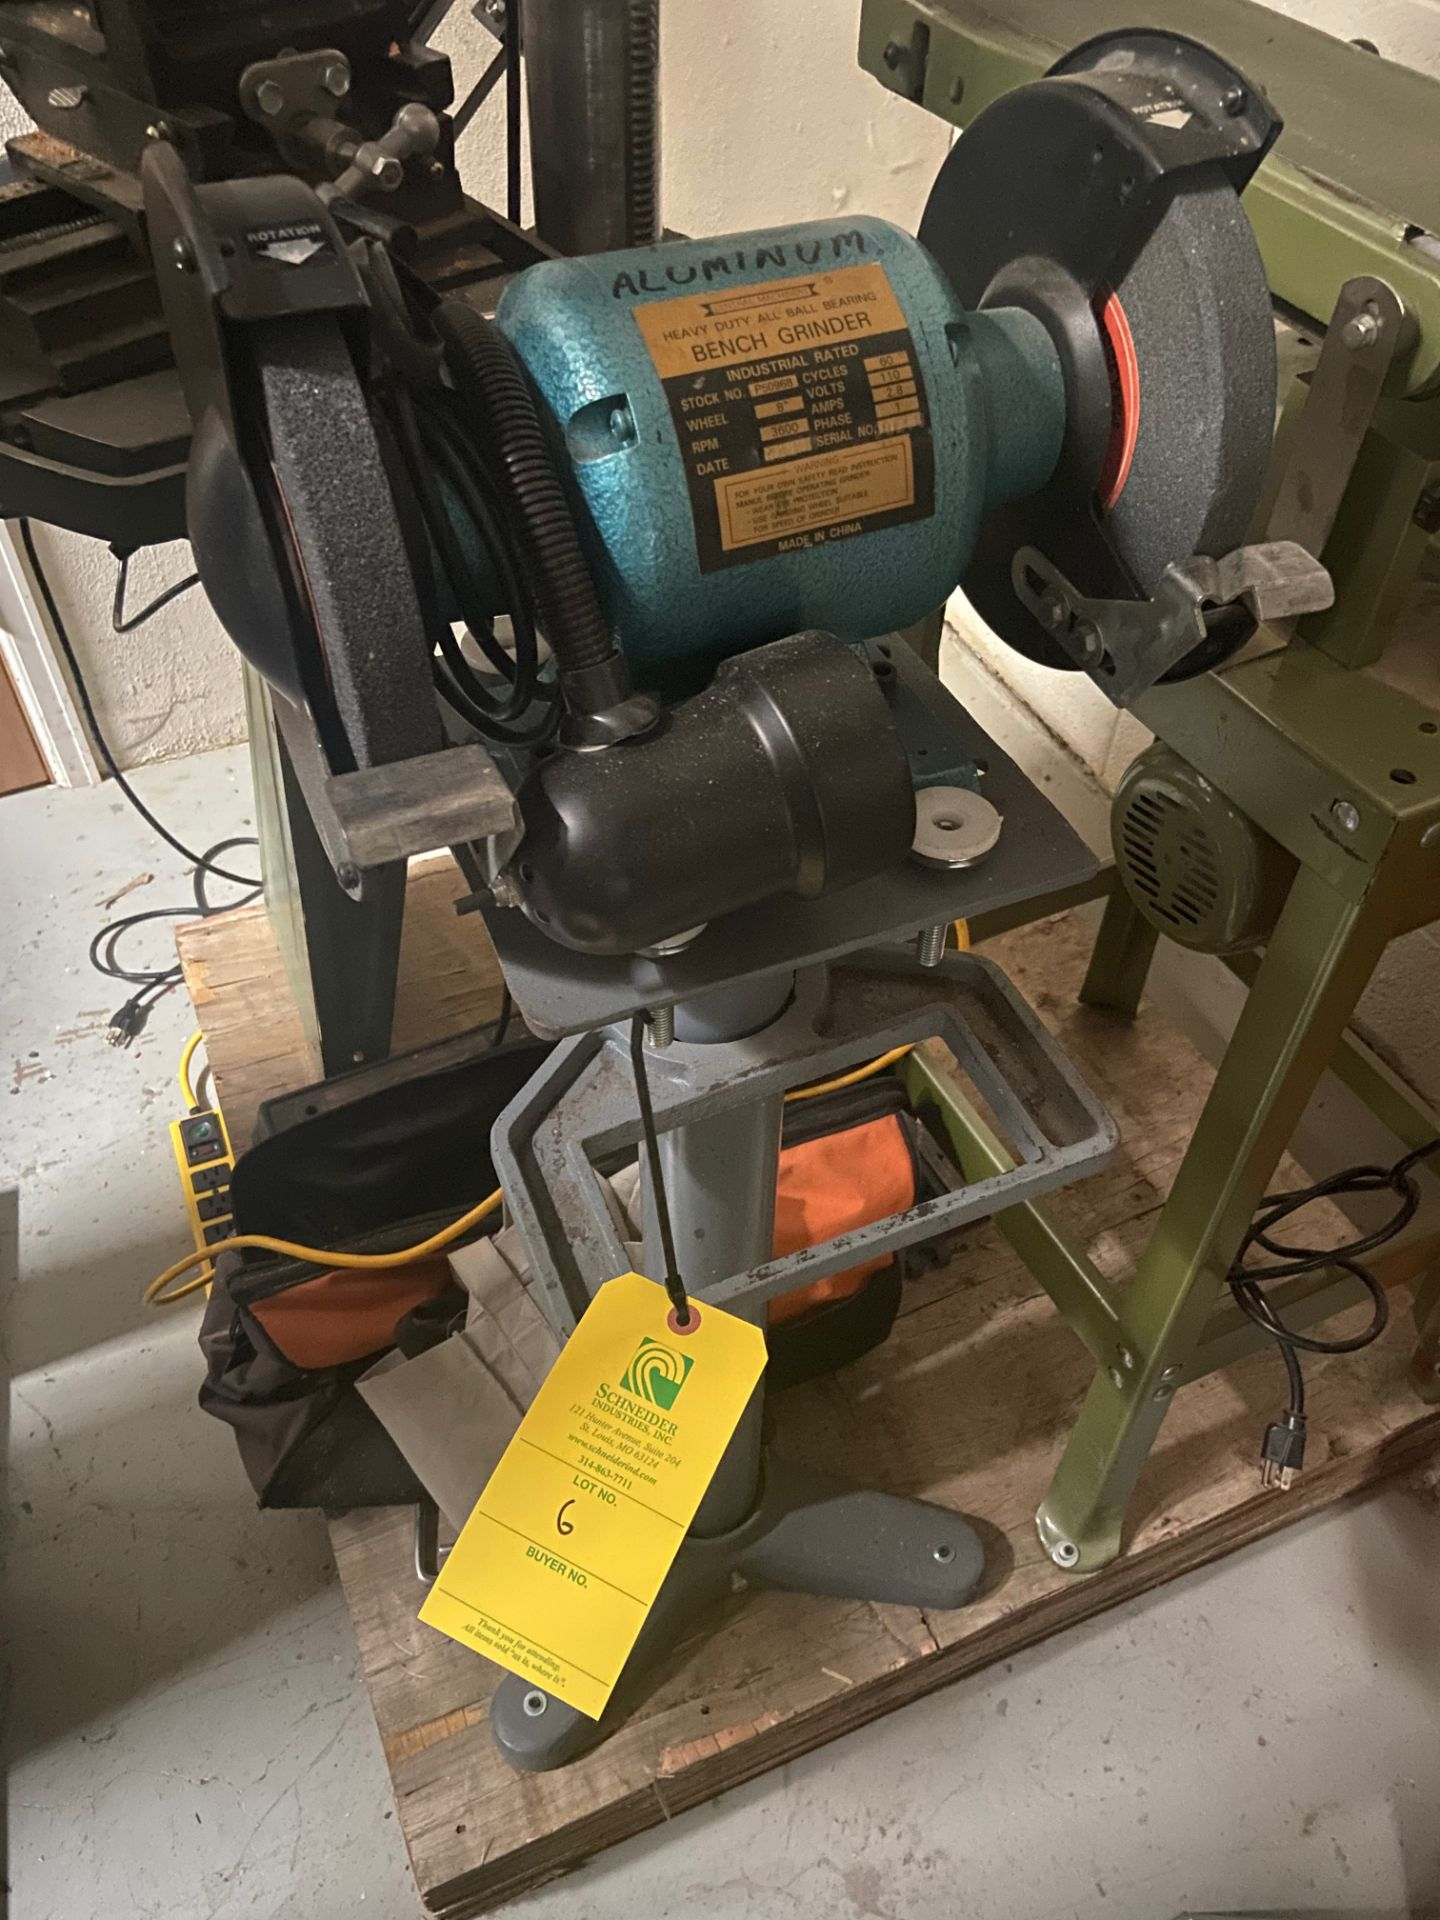 Central Machinery Heavy Duty Bench Grinder, Stock# P50968, 110V, 3600 RPM, Loading/Removal Fee: $25 - Image 2 of 4